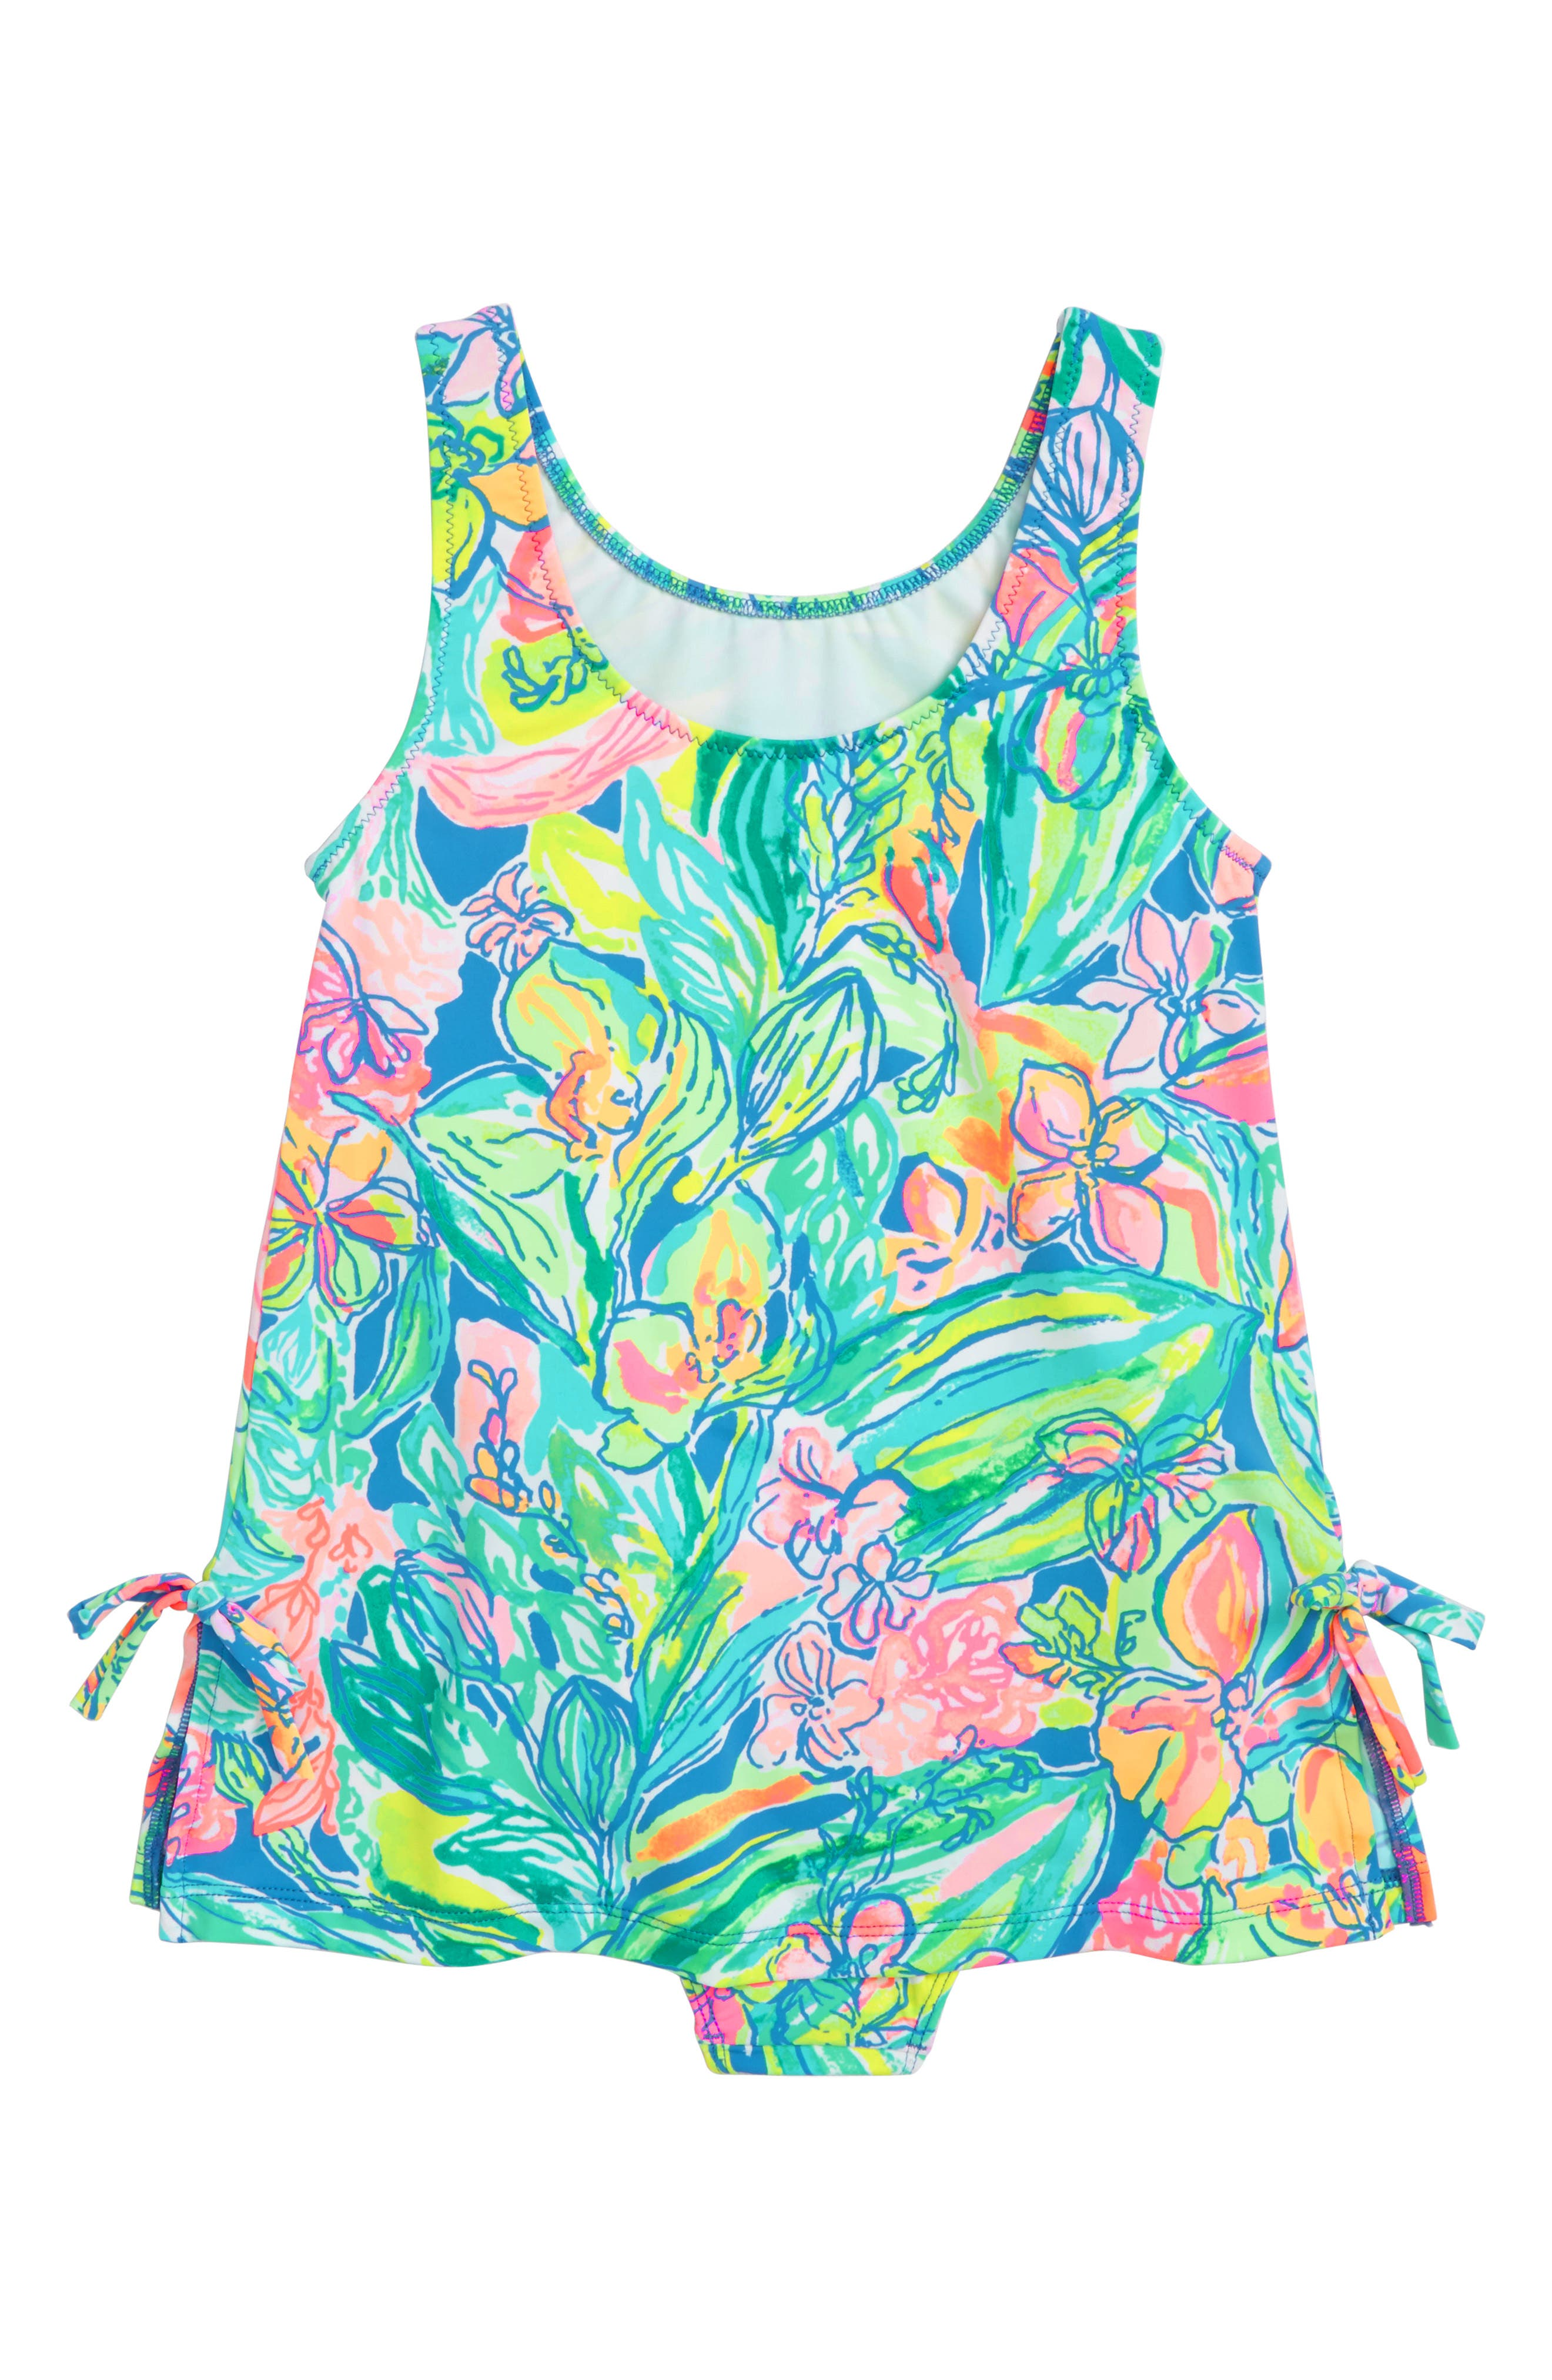 Little Lilly One-Piece Swimsuit,                         Main,                         color, Bennet Blue Surf Gypsea